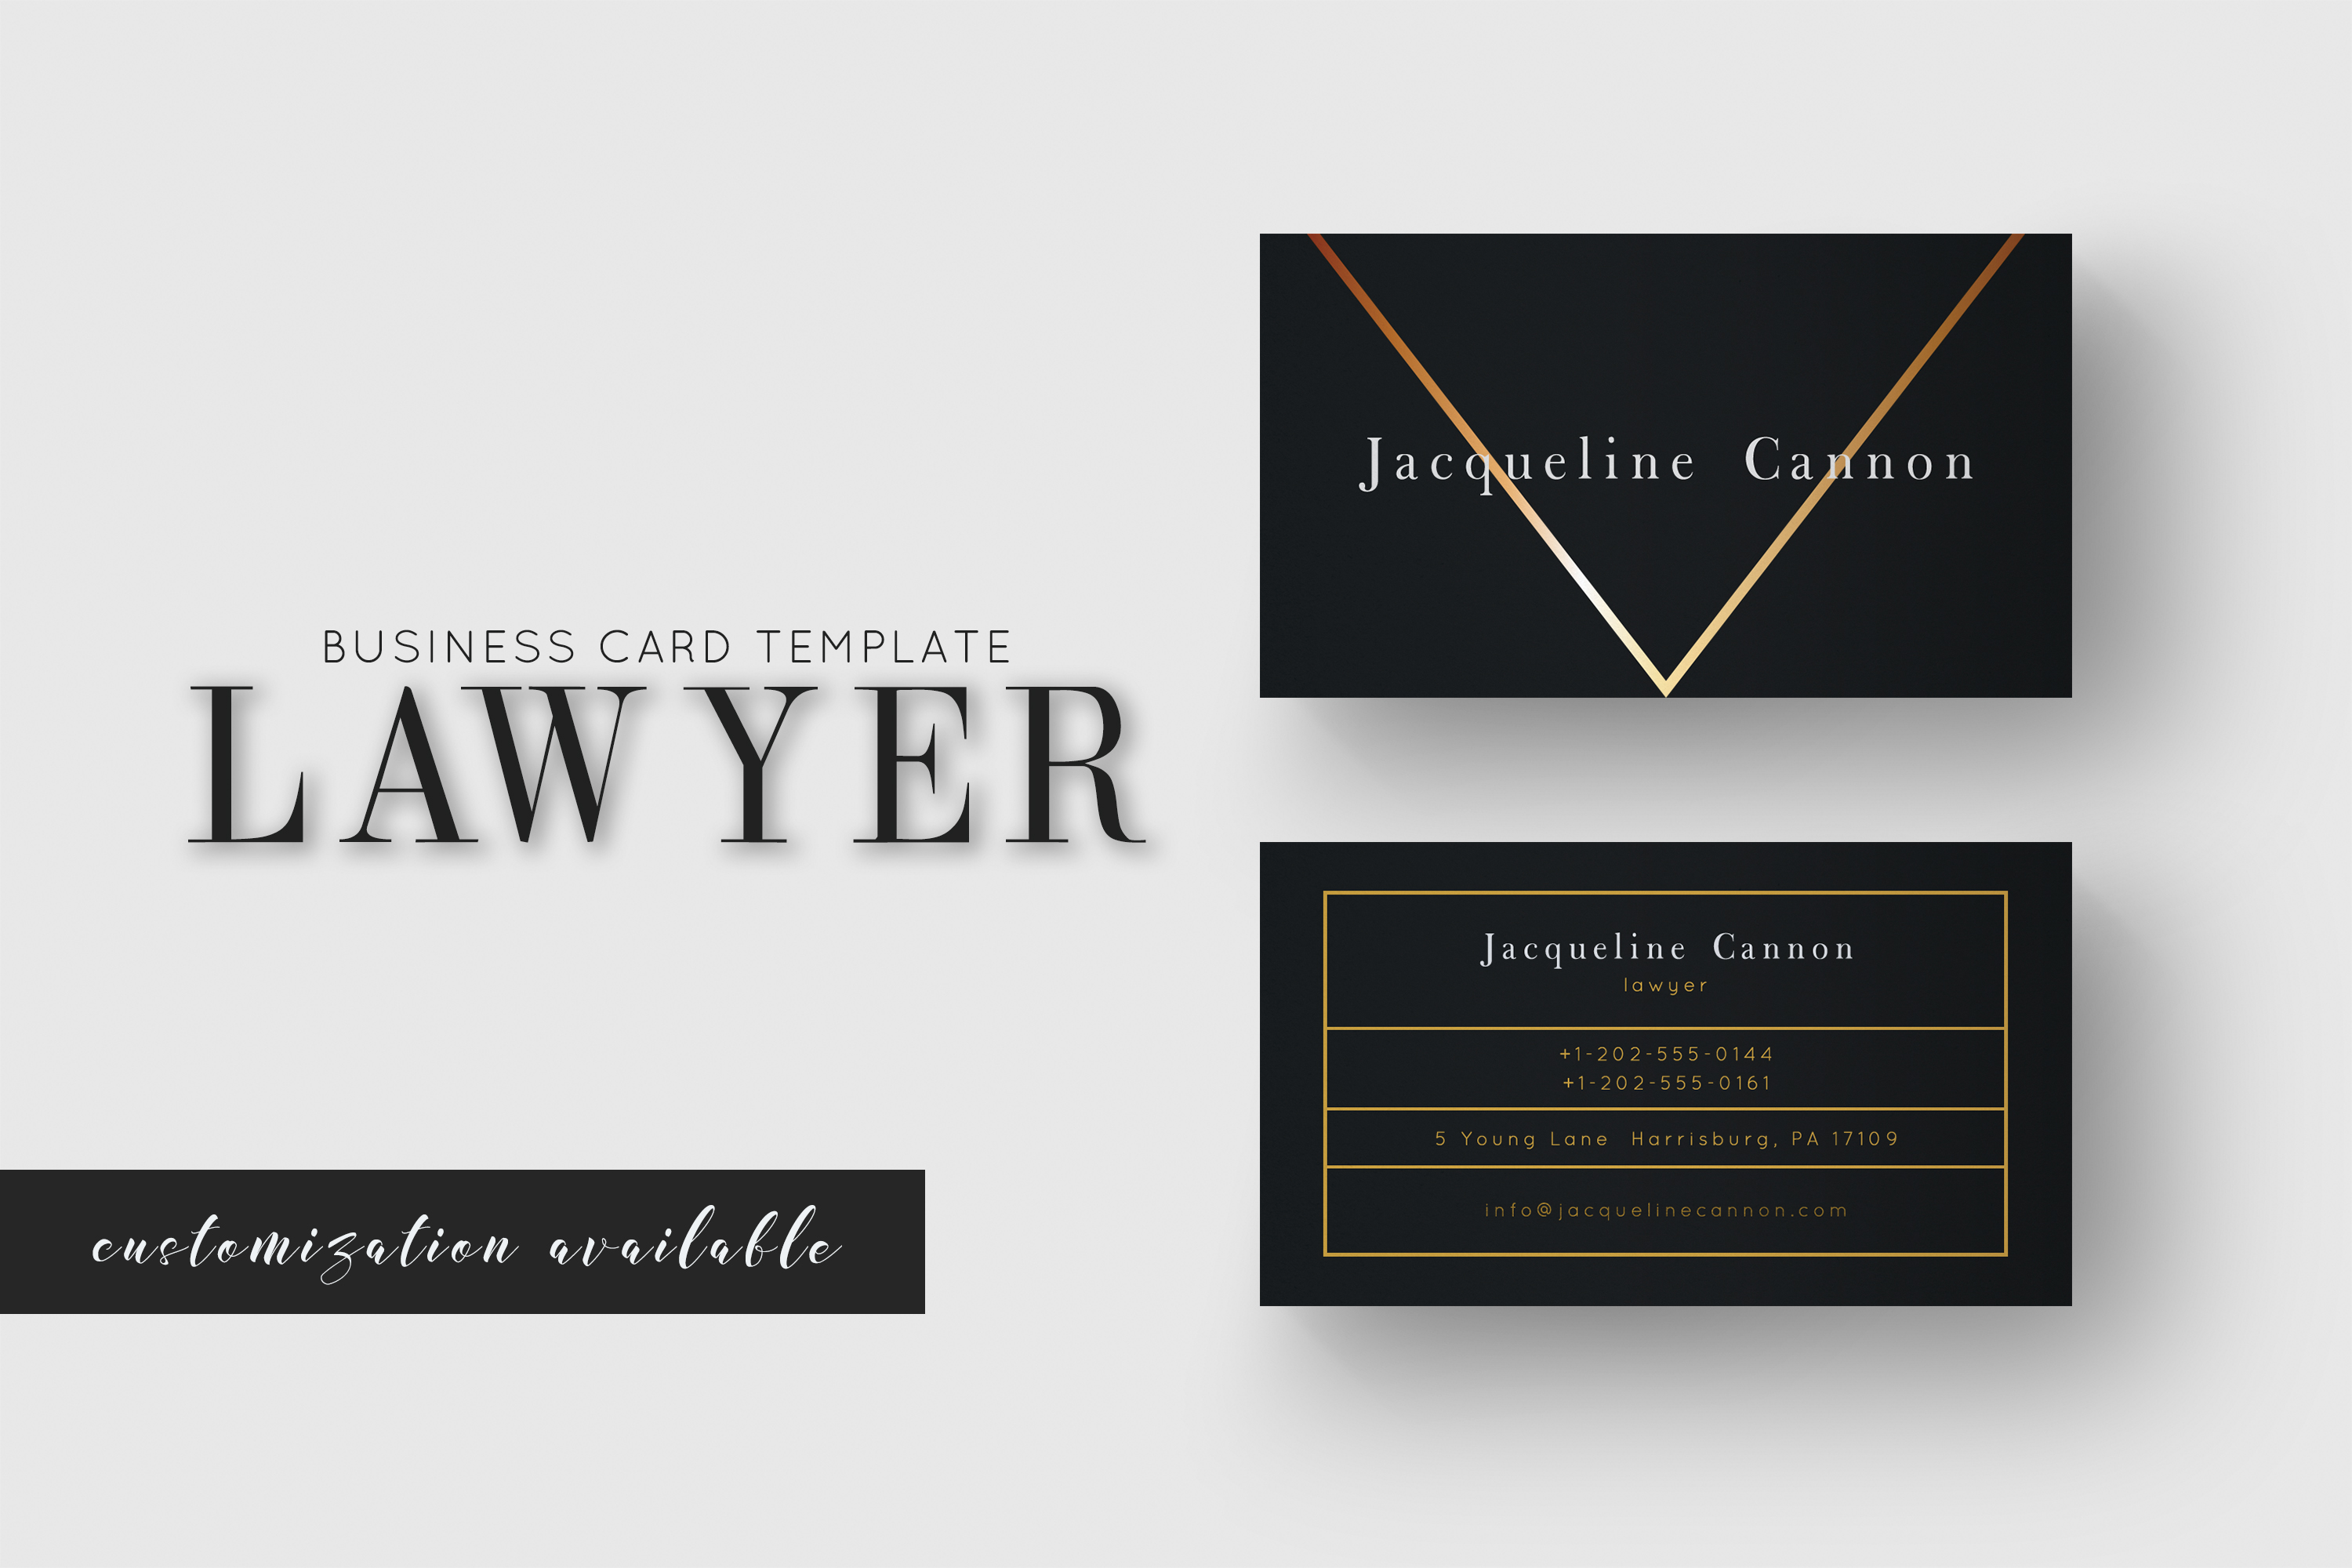 Lawyer Business Card Graphic by Awesome Templates - Creative Fabrica